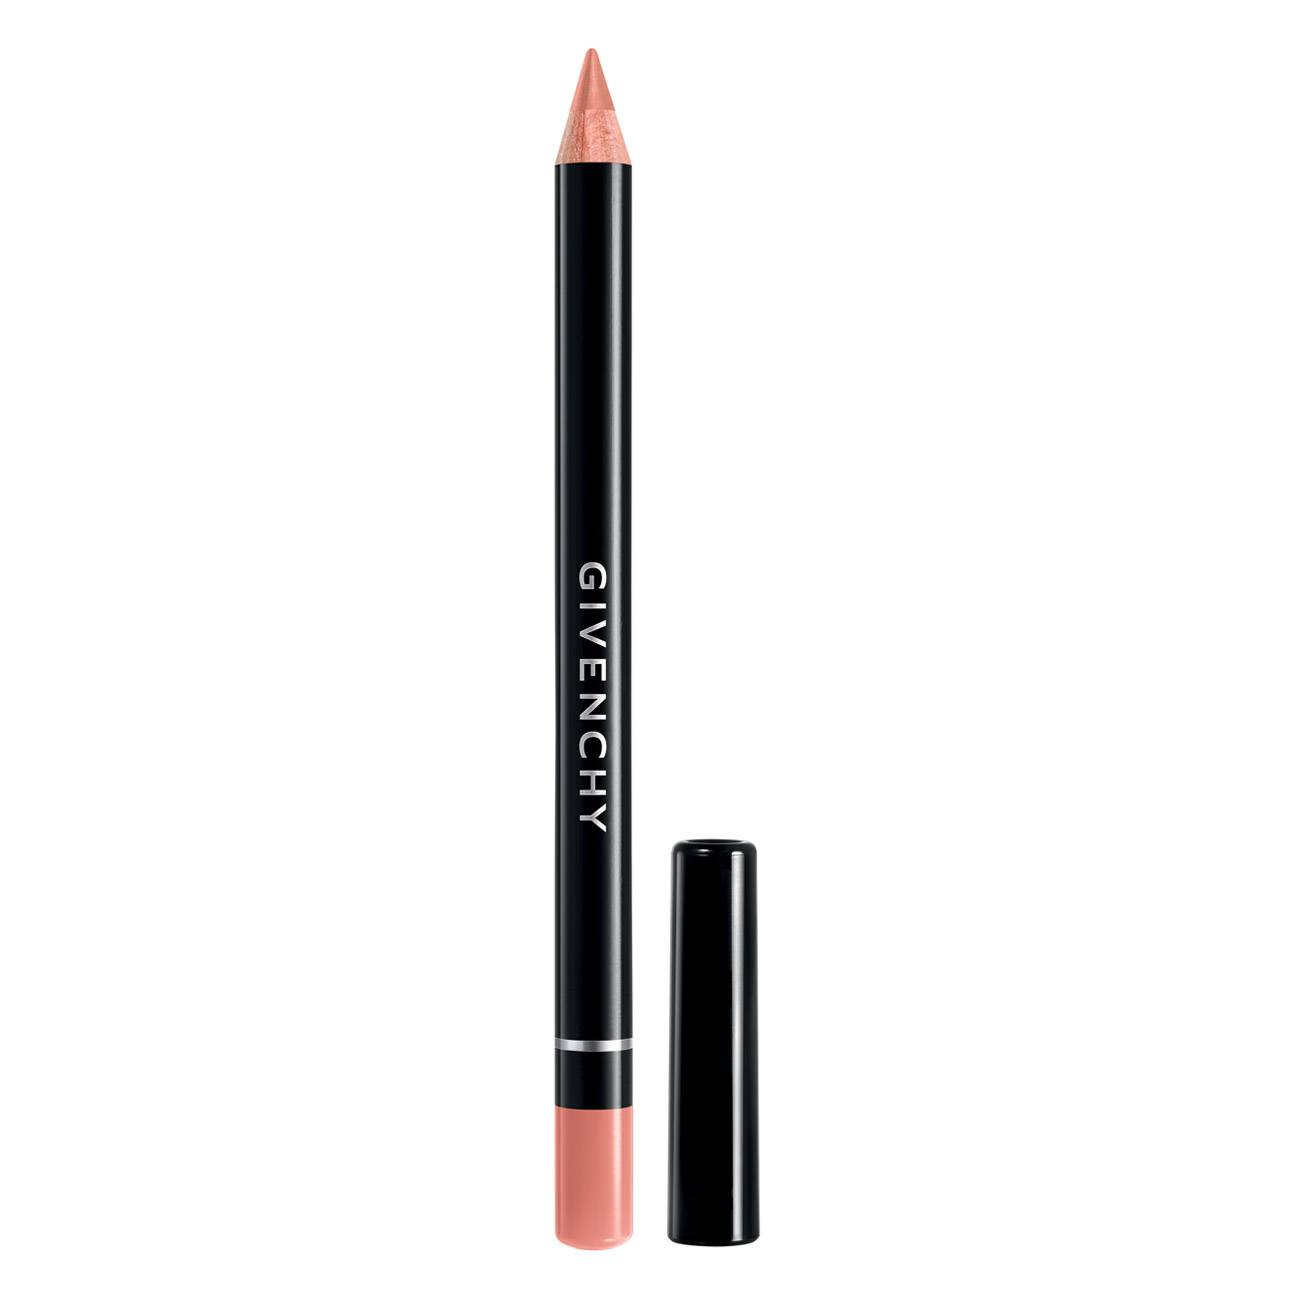 Rouge Interdit Lip Liner 10 1g Givenchy imagine 2021 bestvalue.eu